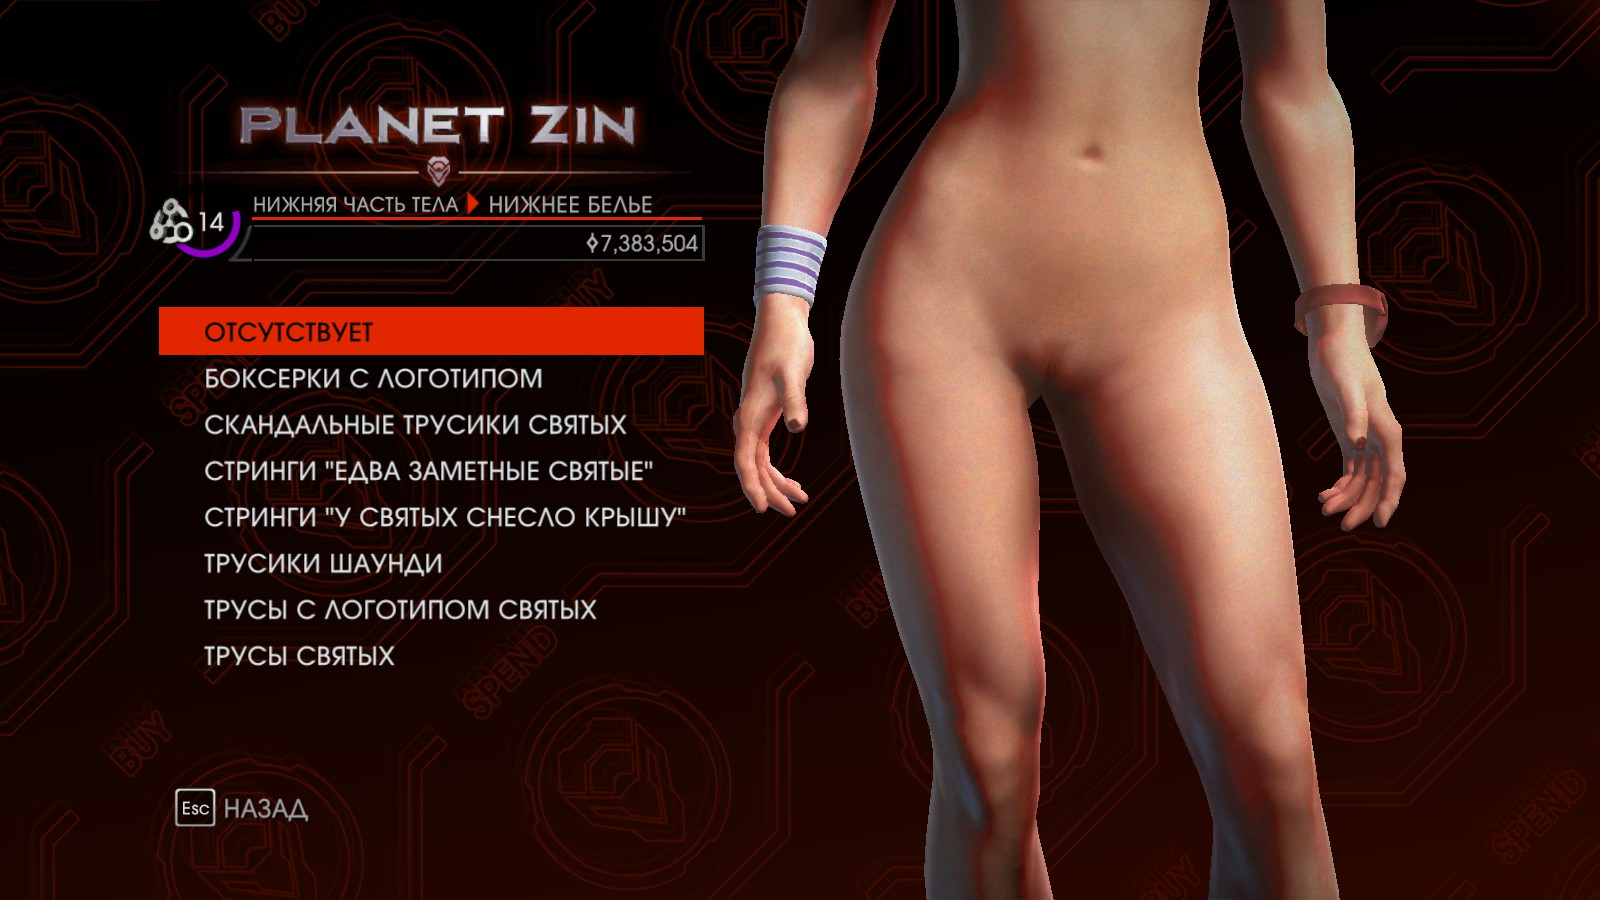 Hot naked saints row 4 sex photos